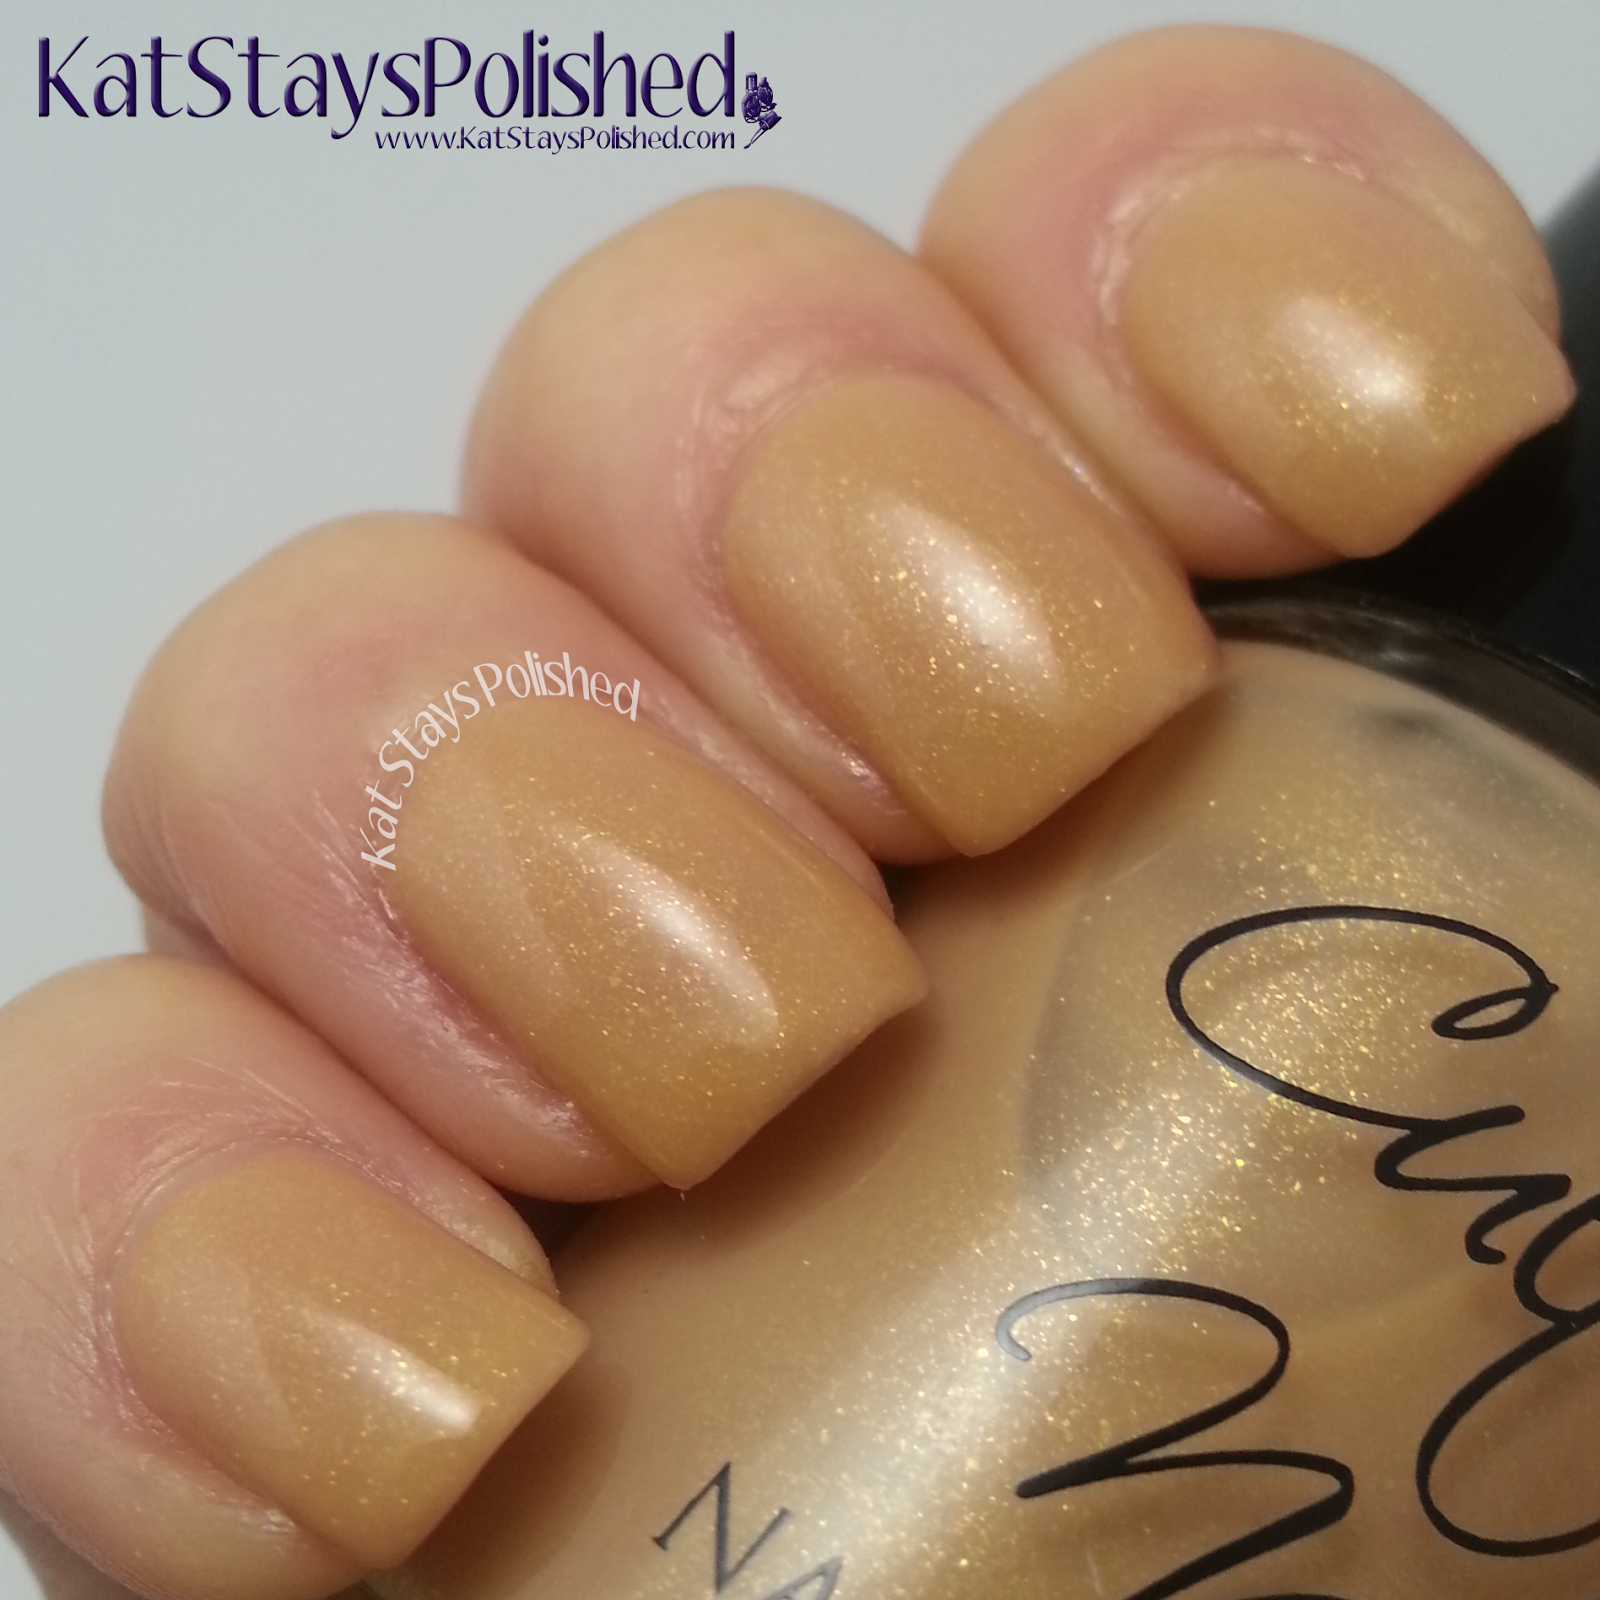 Cult Nails - Baker | Kat Stays Polished